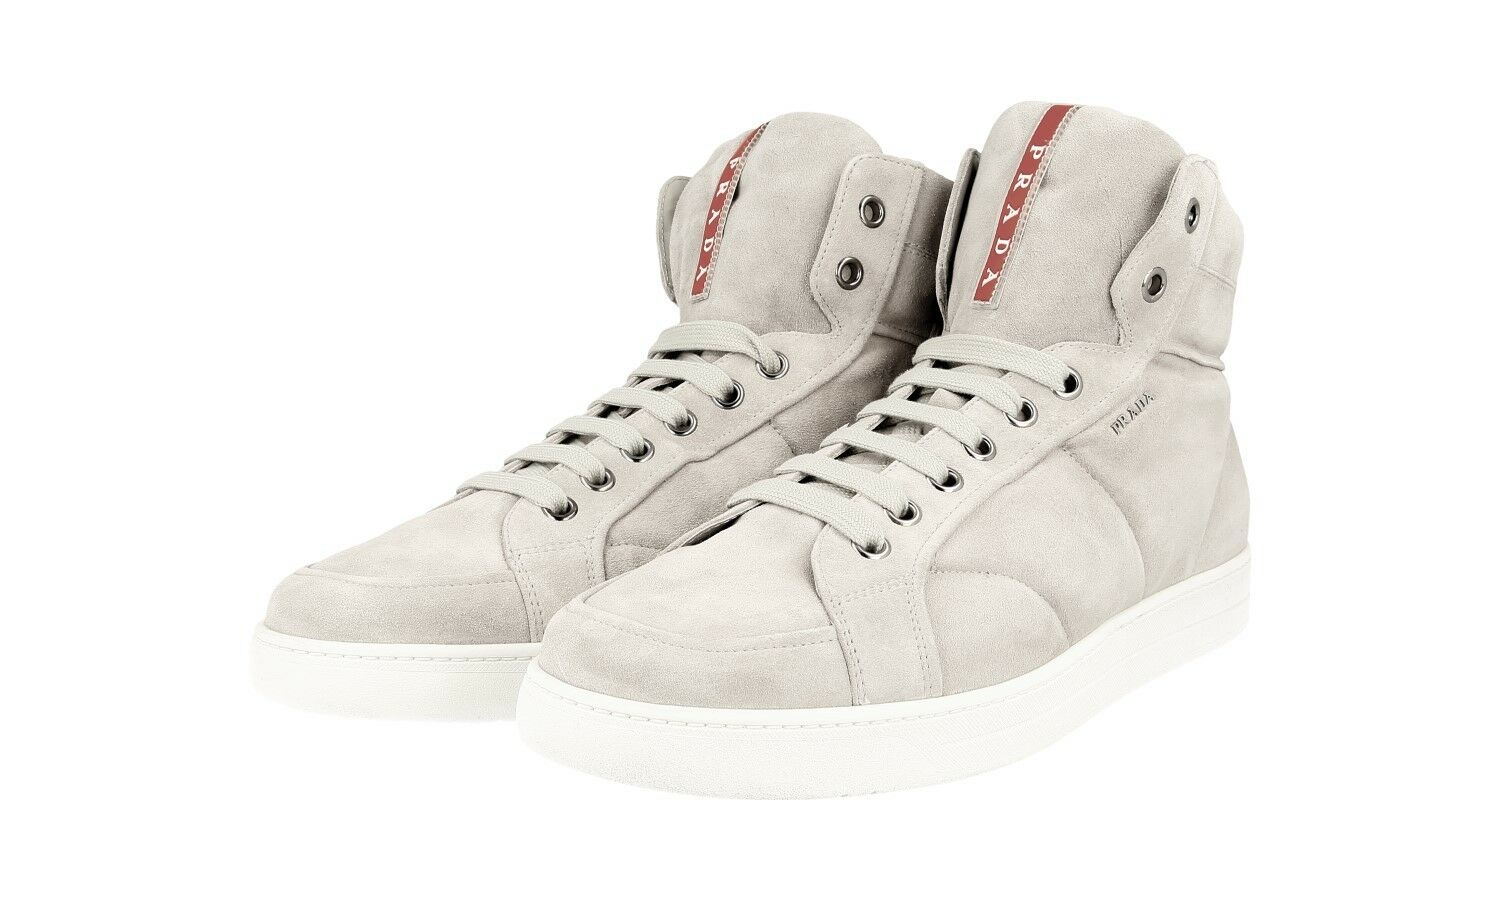 L SO PRADA High Top    4t2596 Asch GRIGIO NUOVO NEW 7,5 41,5 42